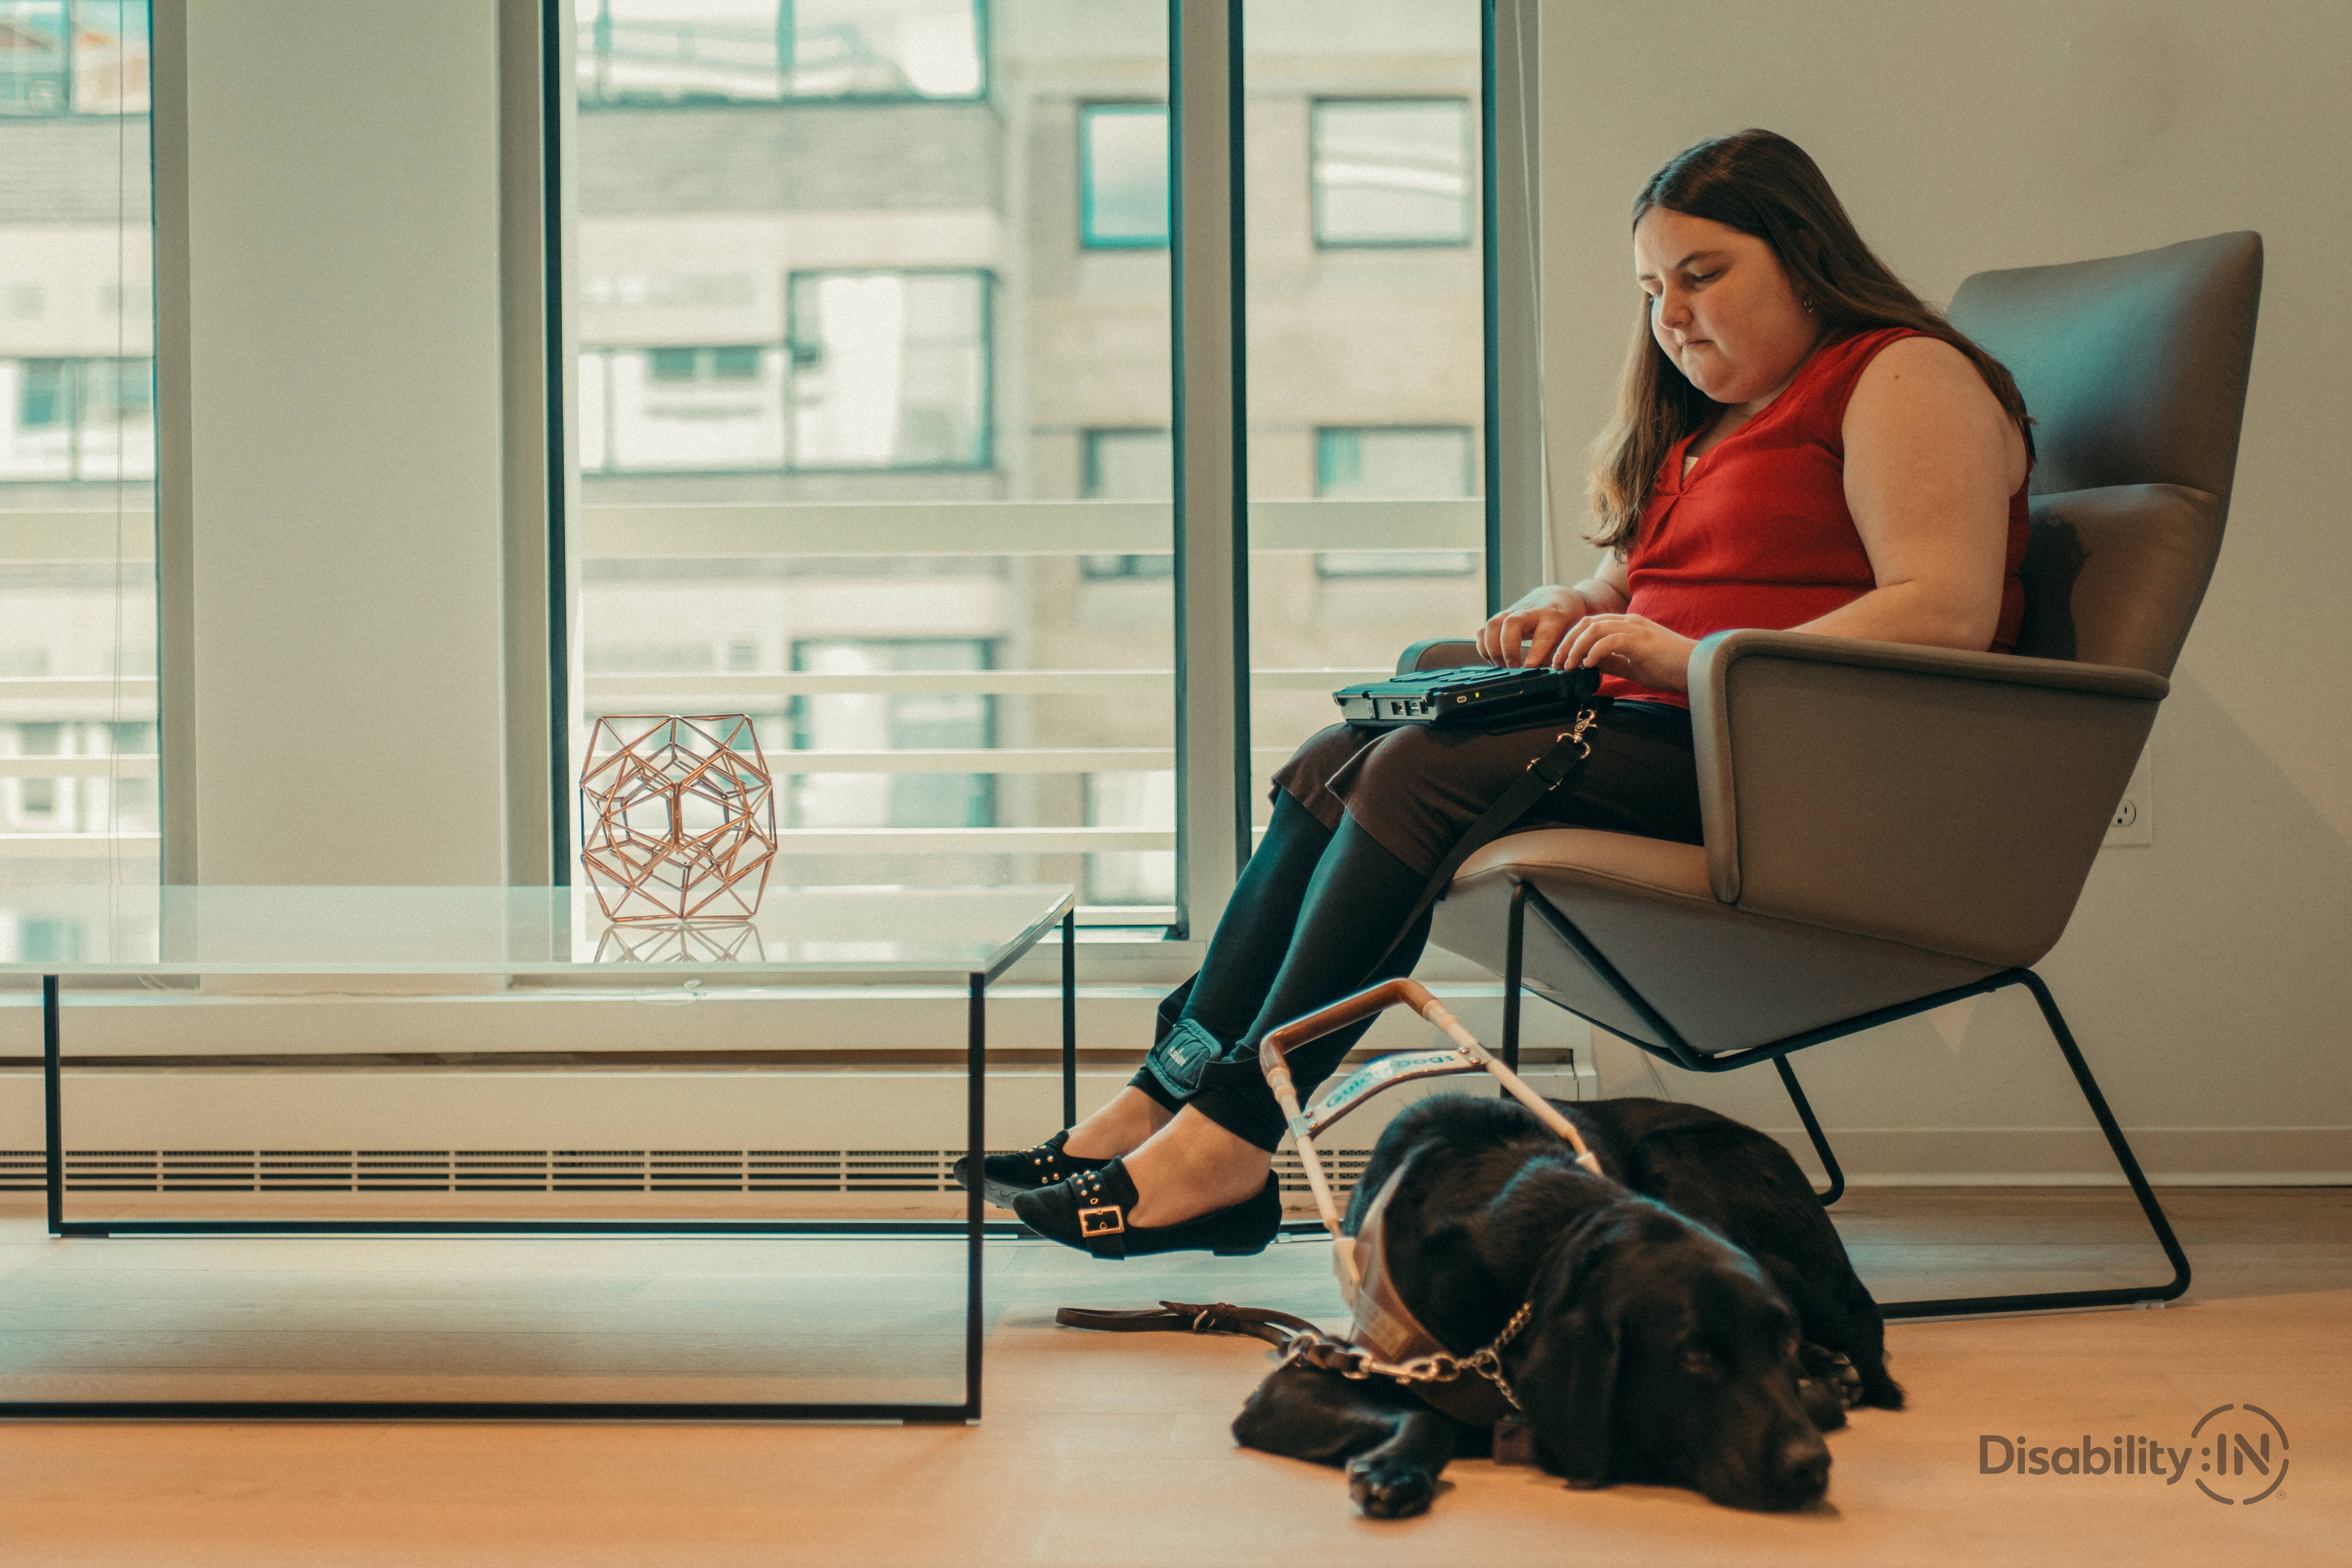 Woman sits on chair taking notes on braille notetaker. Guide dog sits on floor beside her.